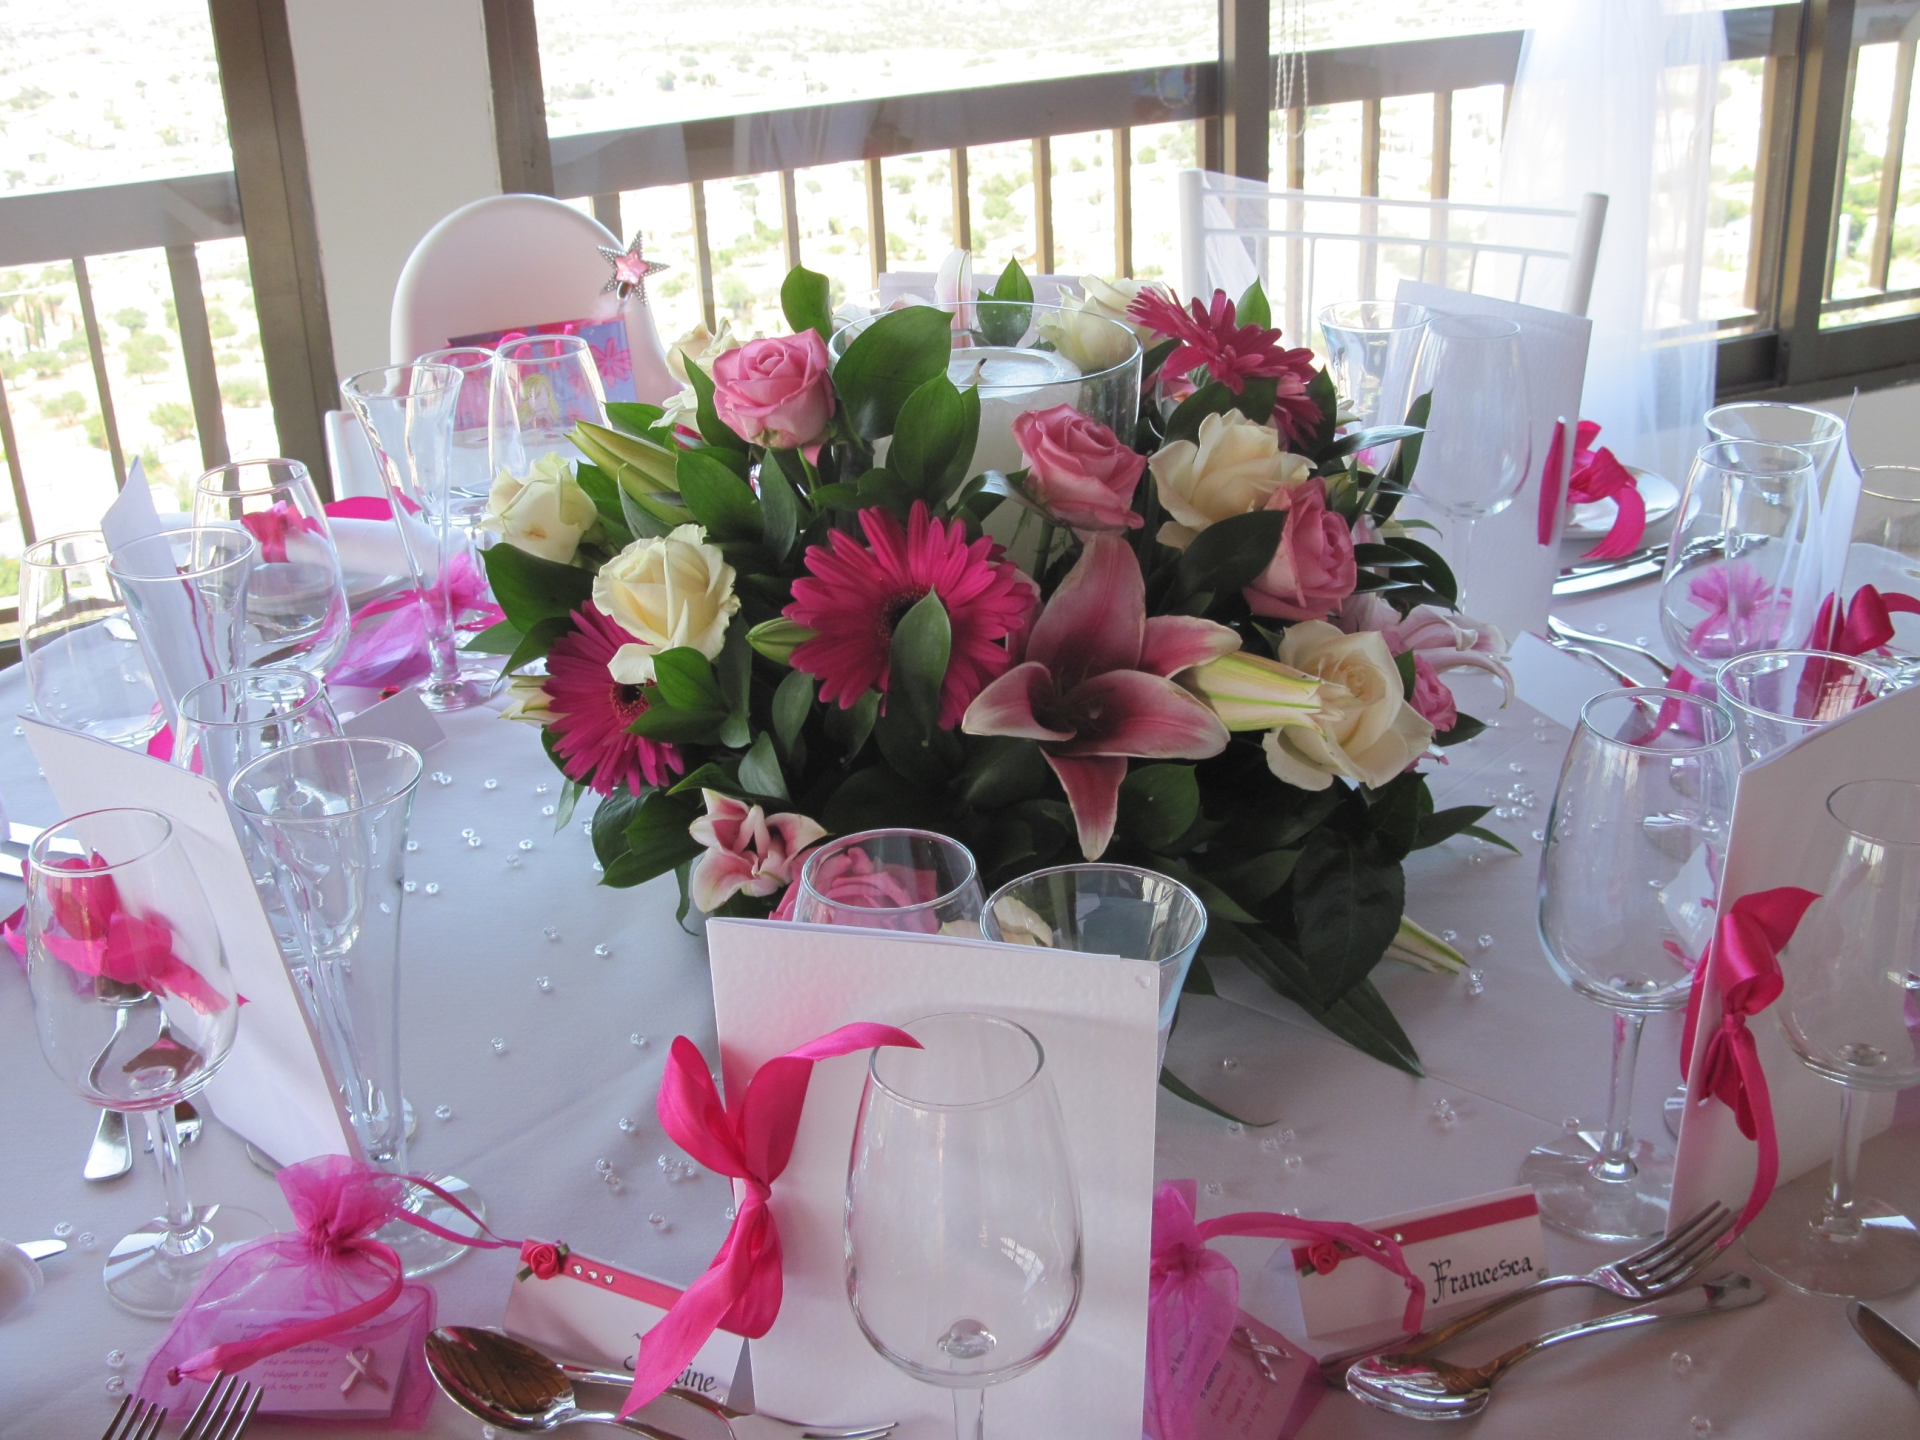 lovely stargazer lilies, with pink gerbera, white roses and pale pink roses